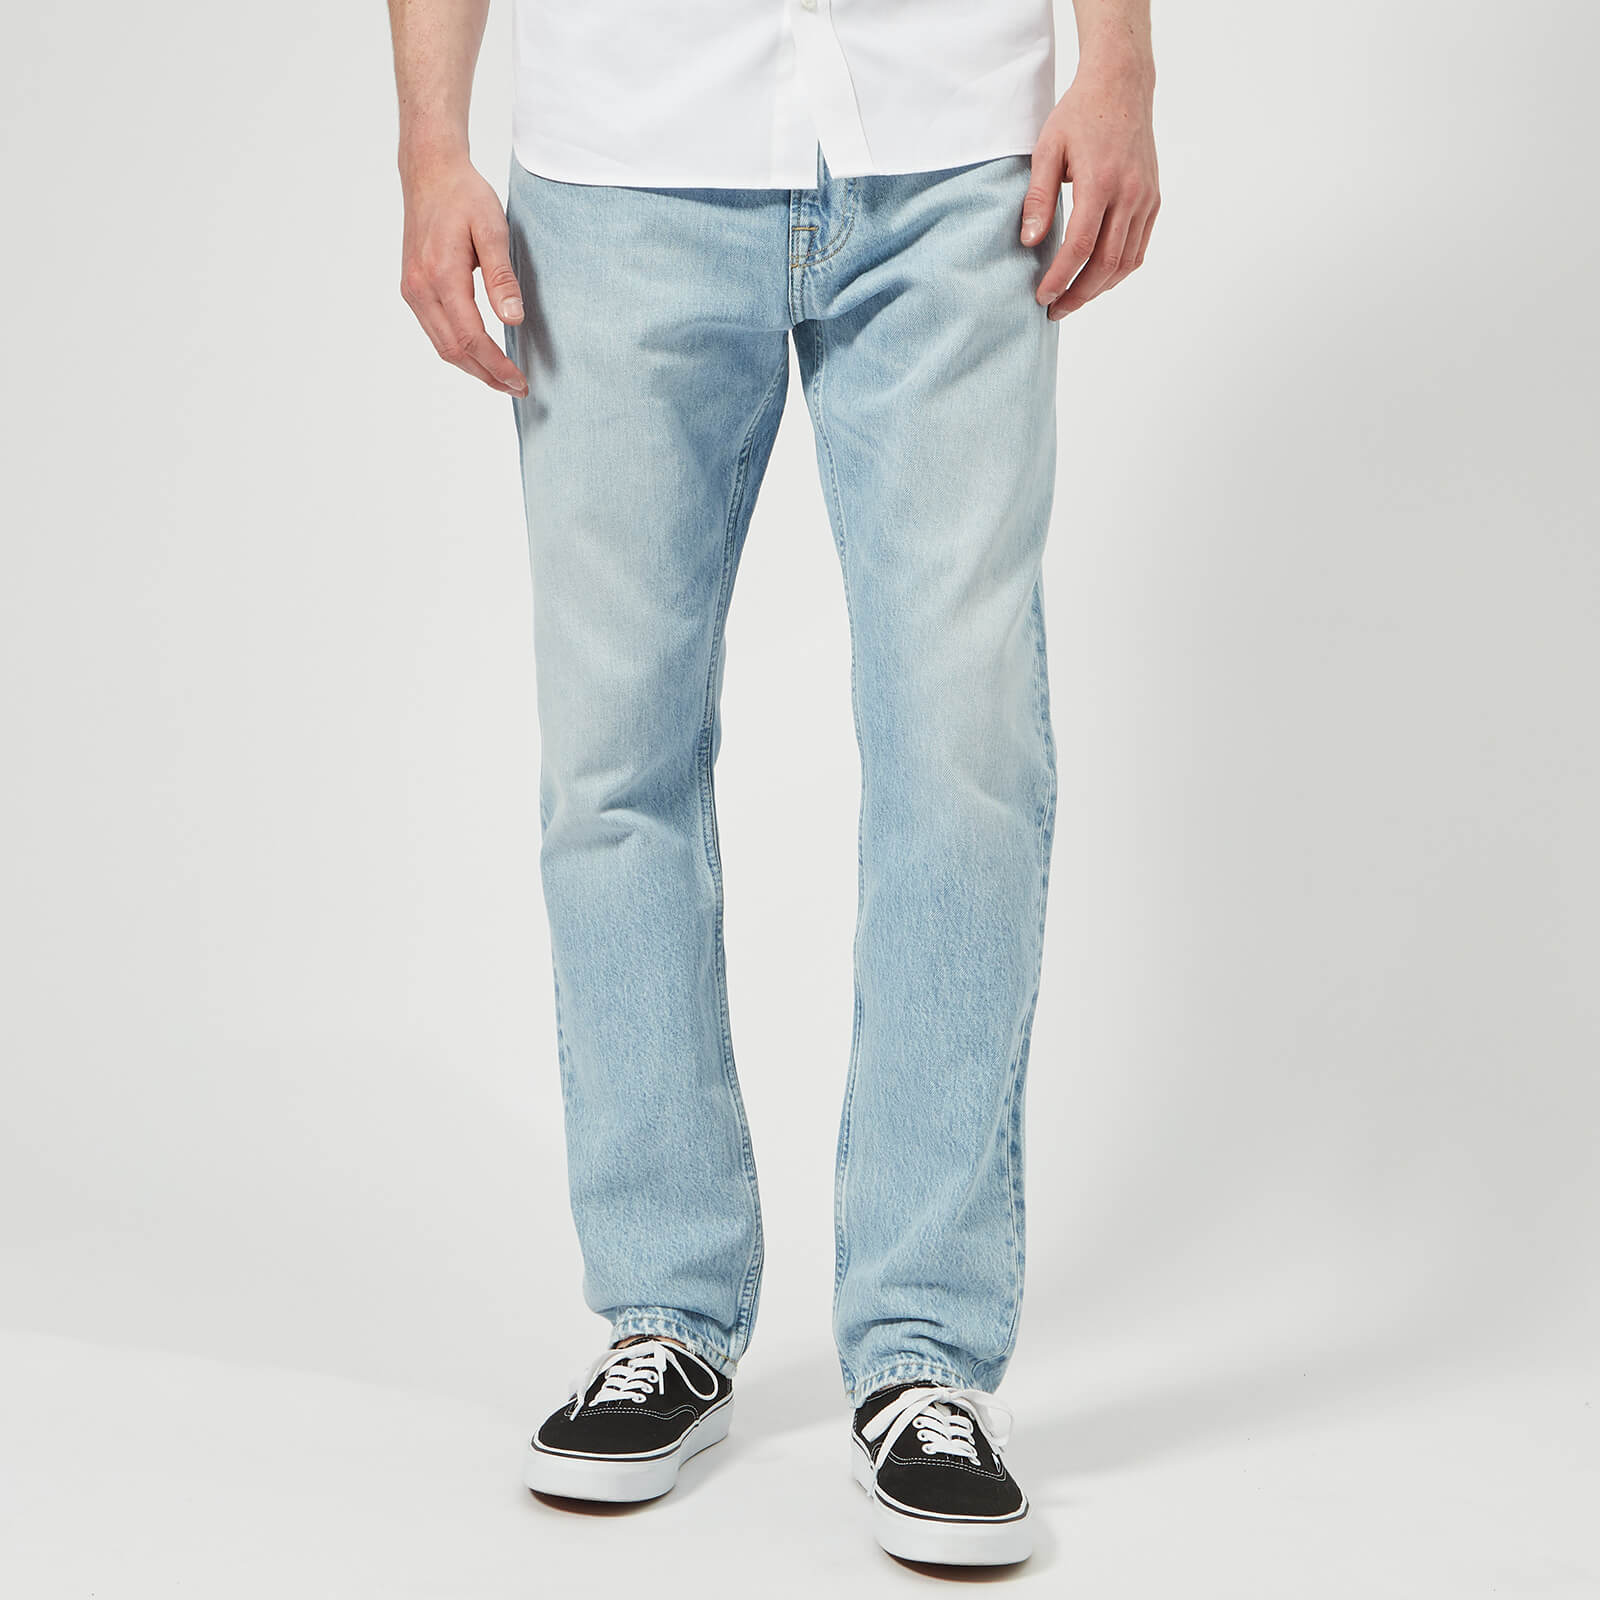 47301a1a Calvin Klein Jeans Men's CKJ 056: Athletic Tapered West Jeans - Pescadero  Blue - Free UK Delivery over £50